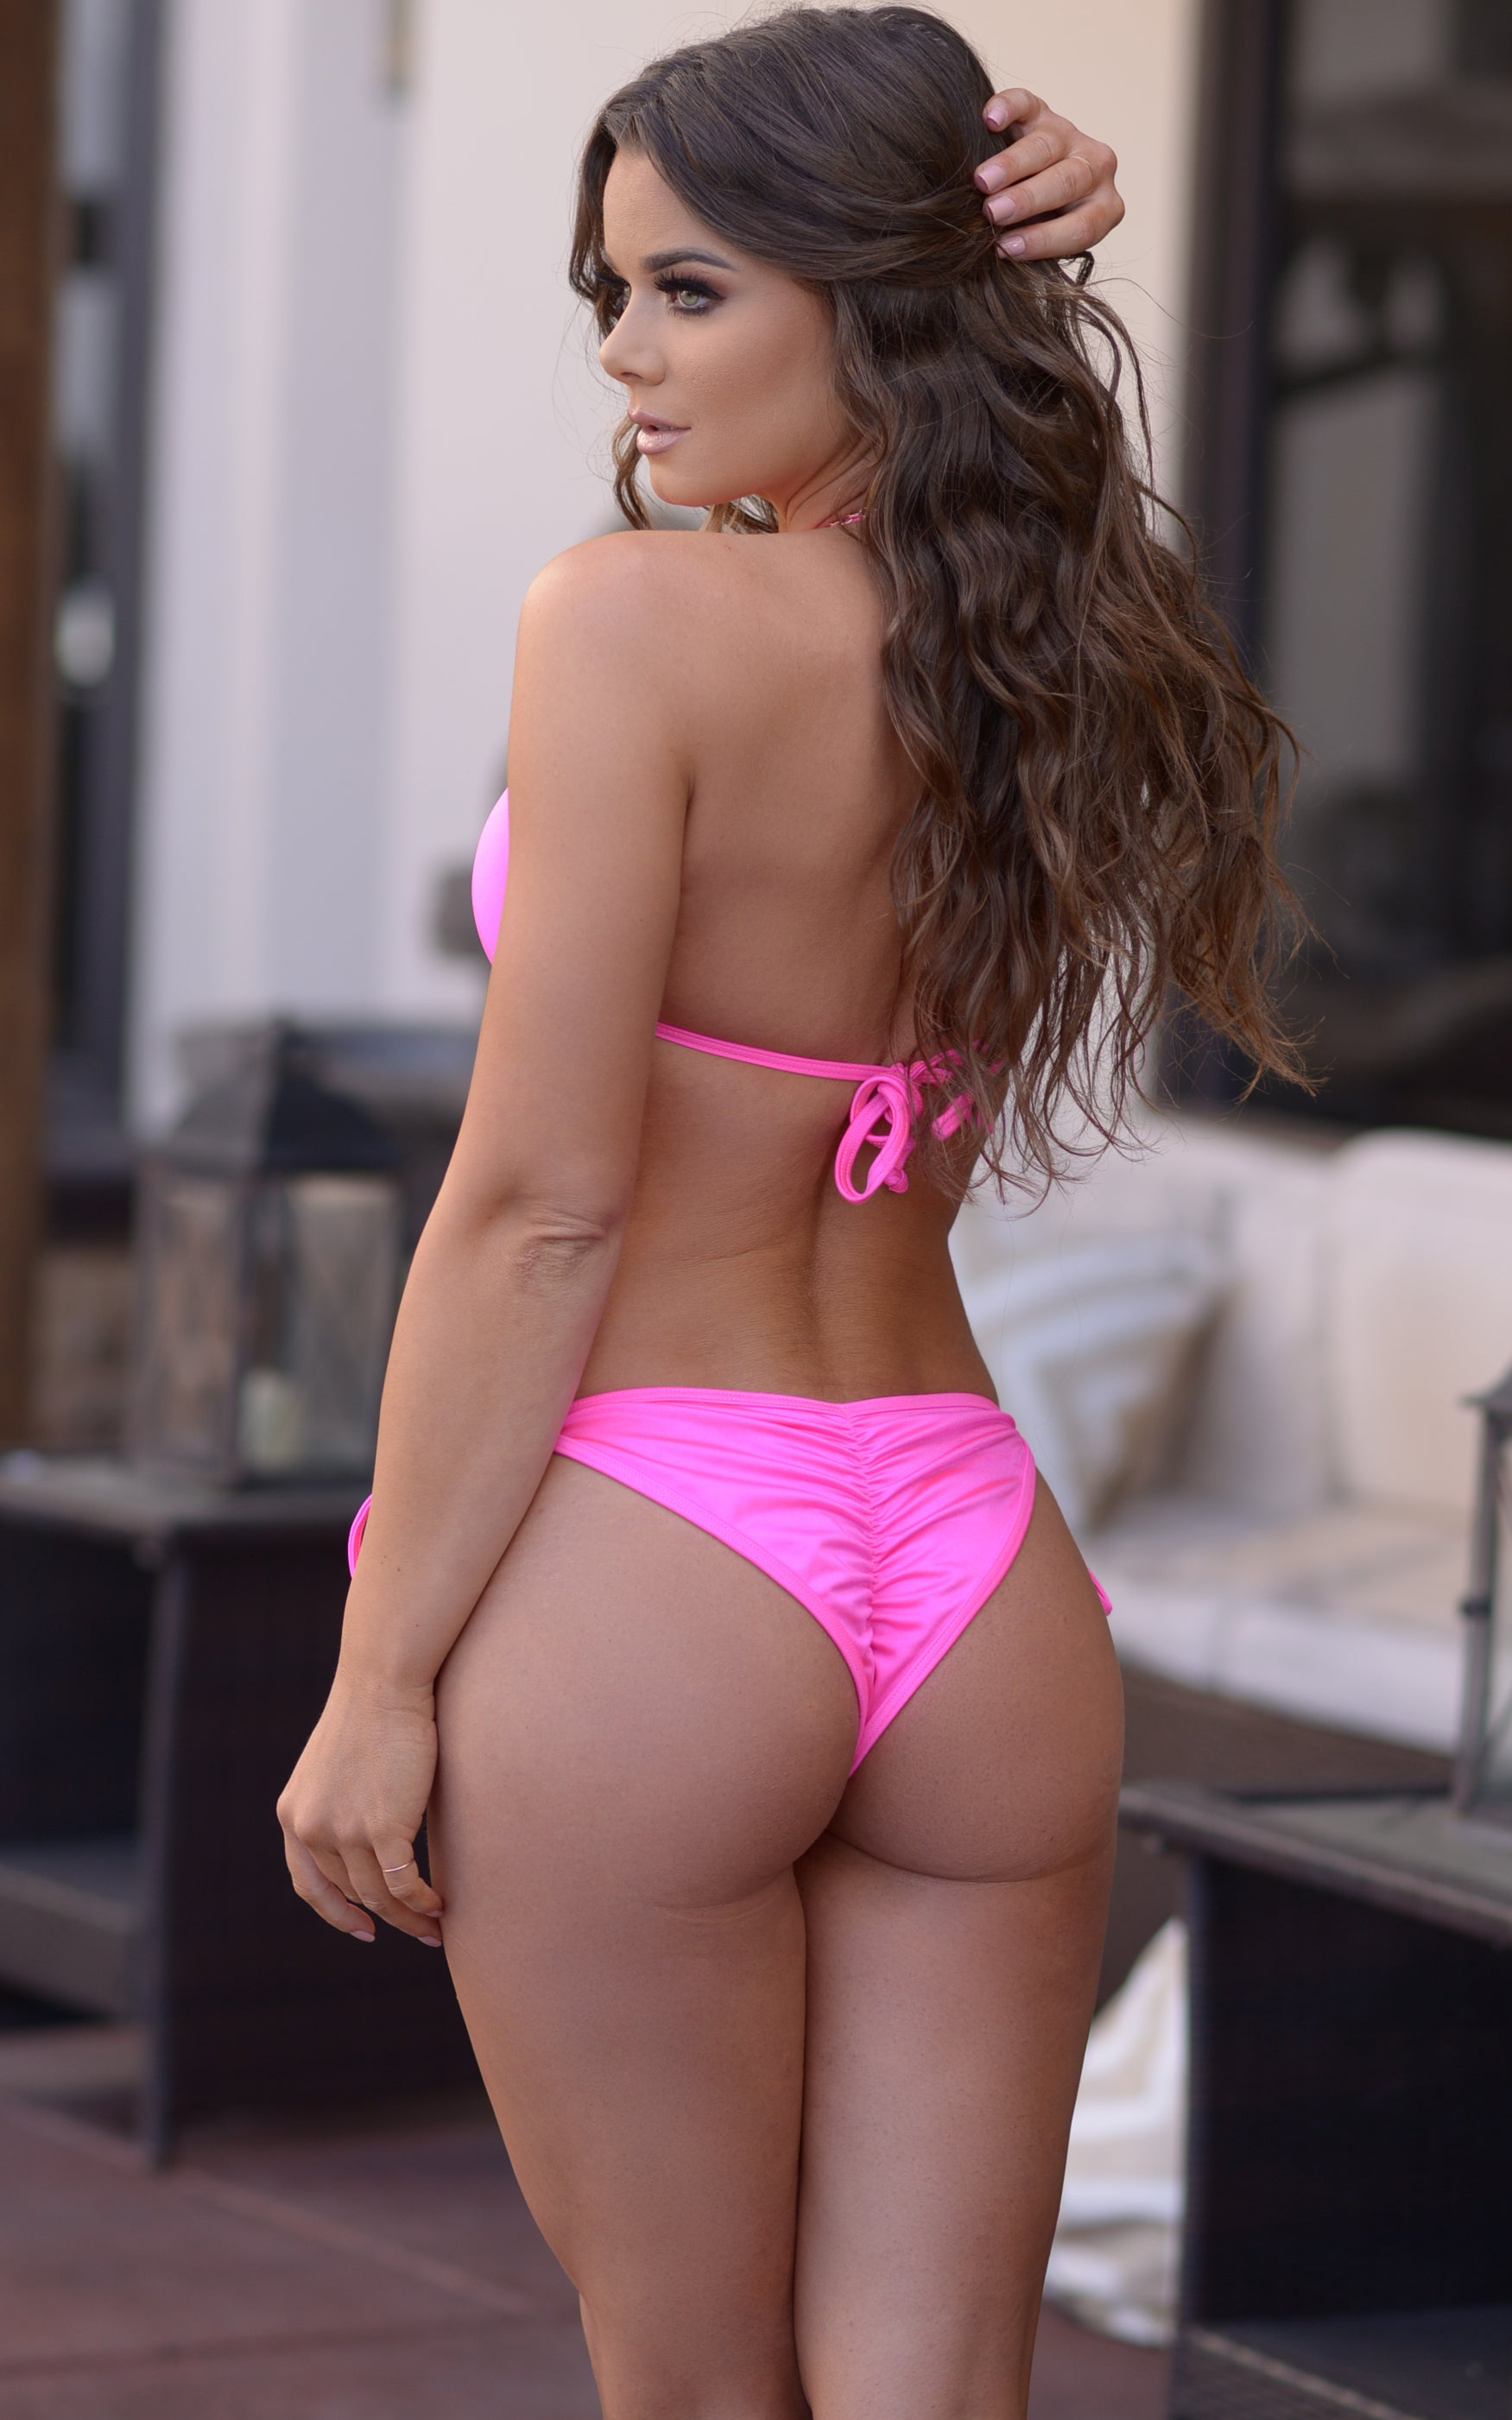 Victoria: Padded Push Up Swimsuit in Neon Pink - Chynna Dolls Swimwear